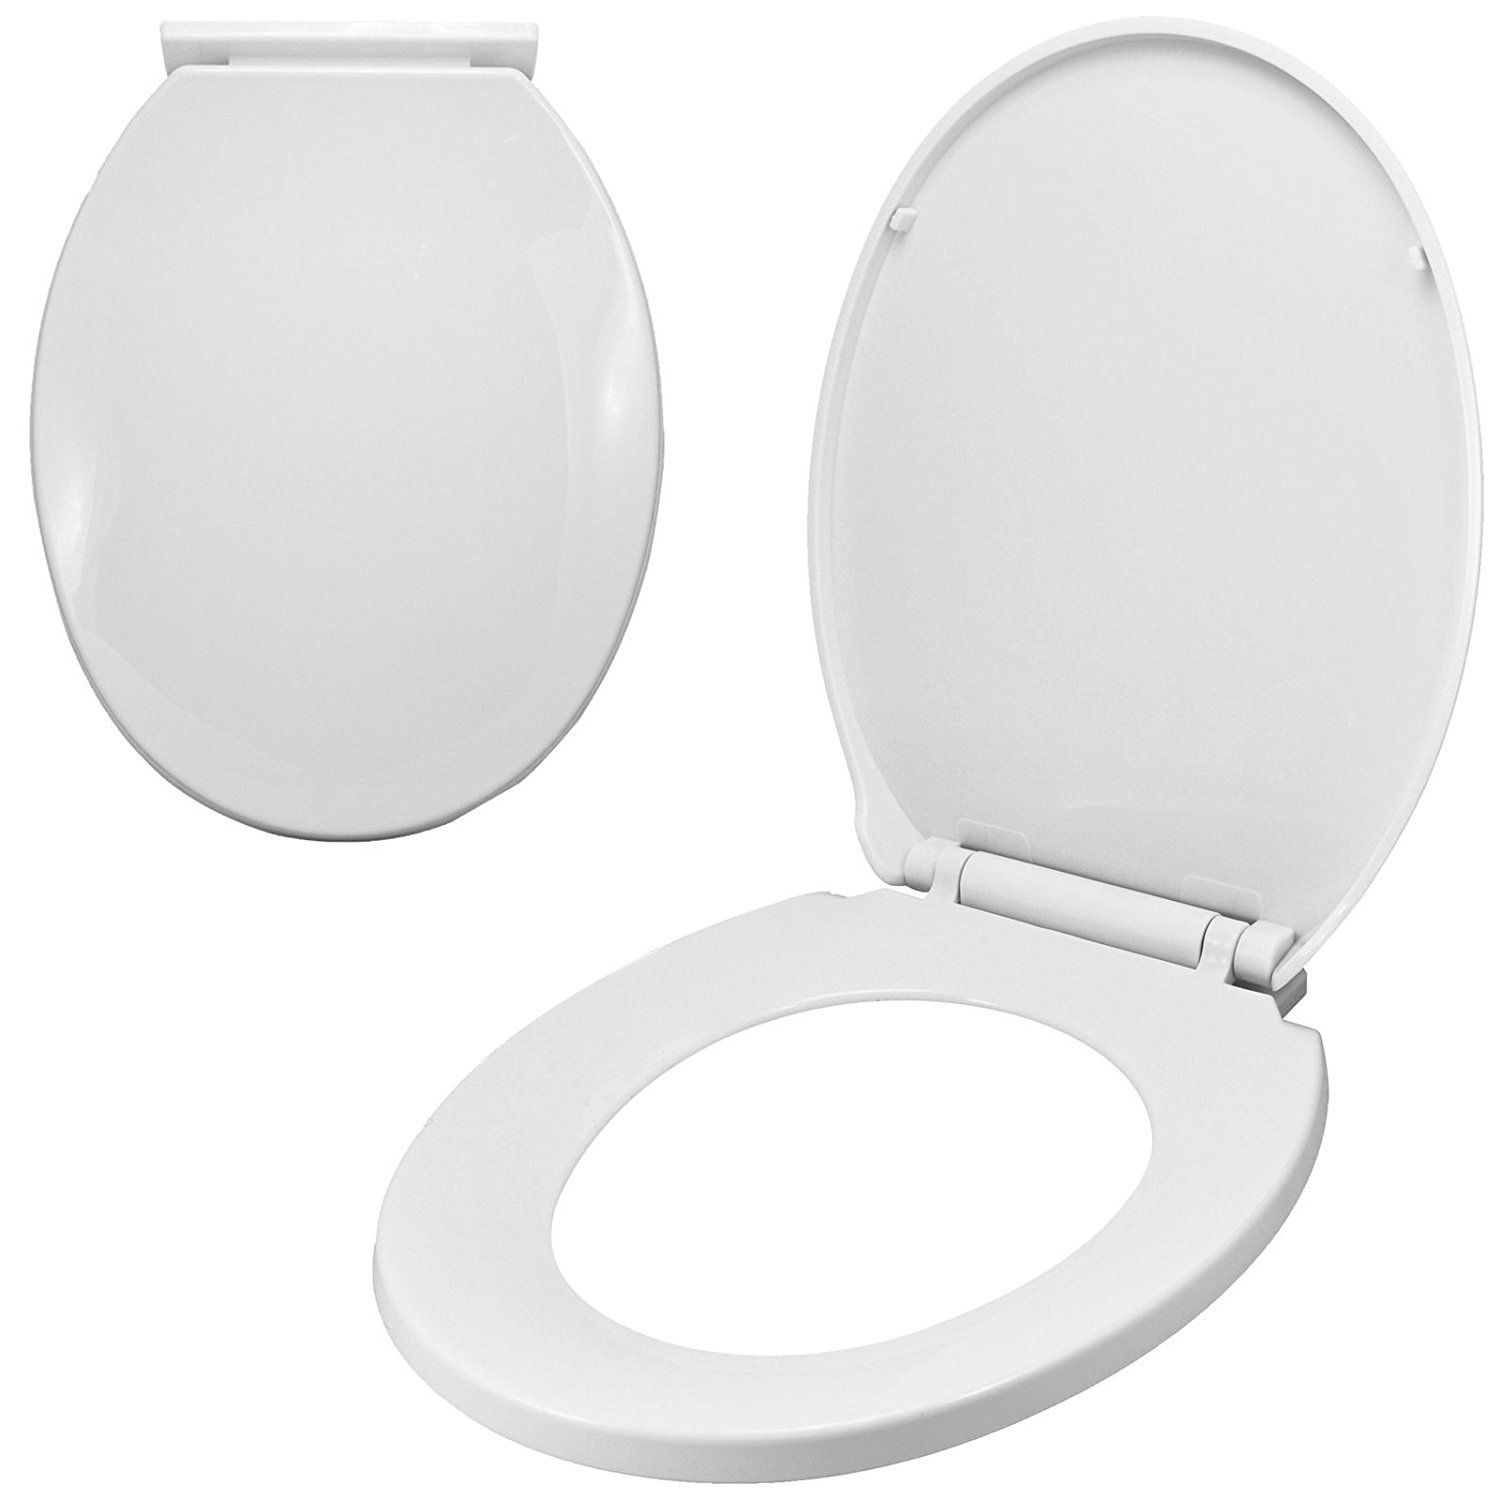 Groovy Luxury Comfort Oval Toilet Seat Heavy Duty Soft Close White Easy Installation Machost Co Dining Chair Design Ideas Machostcouk